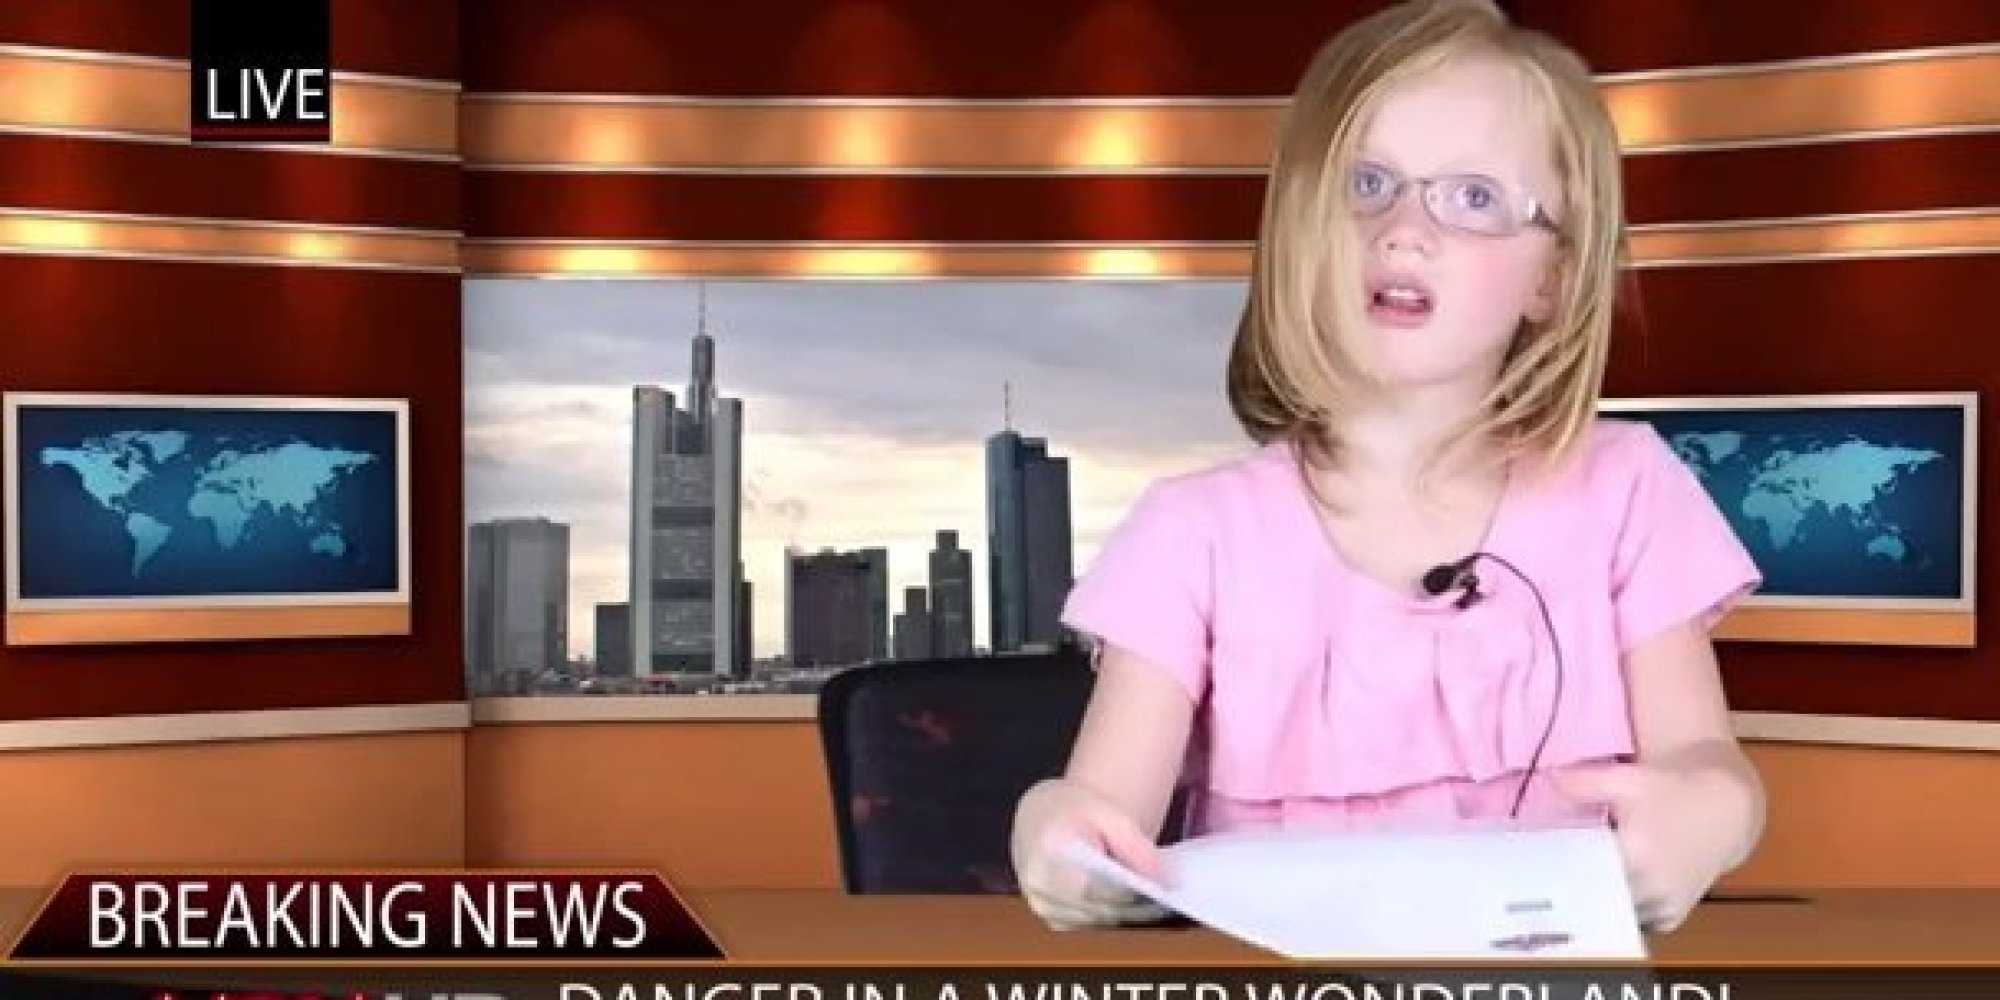 Two Kids Deliver An Unprompted, Unscripted, Hilarious News ...